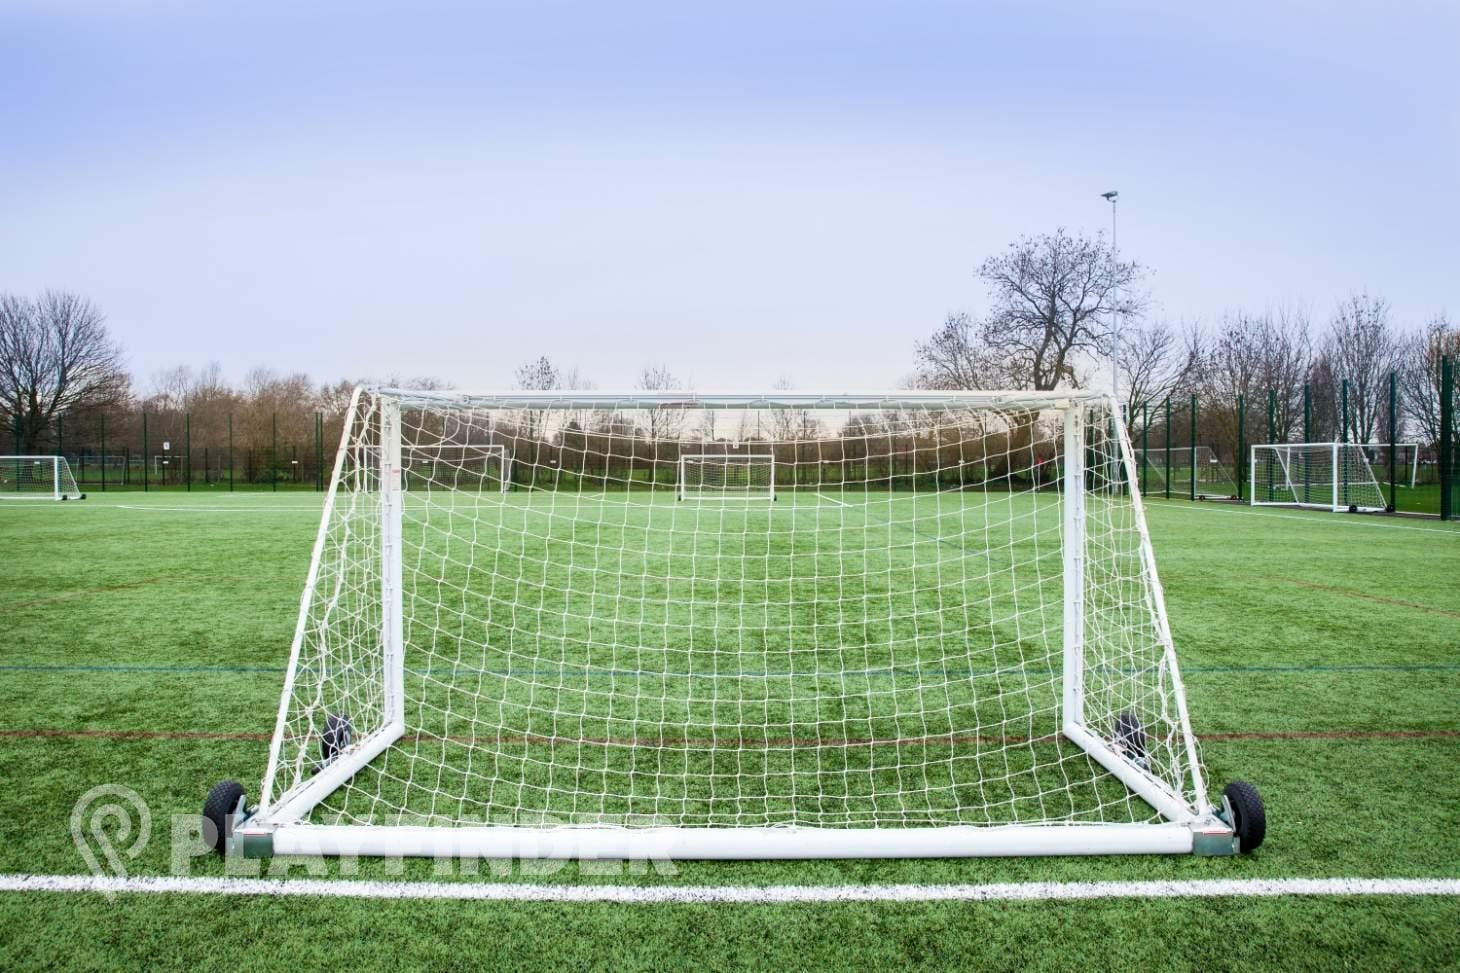 CONEL Sports Facilities 5 a side | 3G Astroturf football pitch